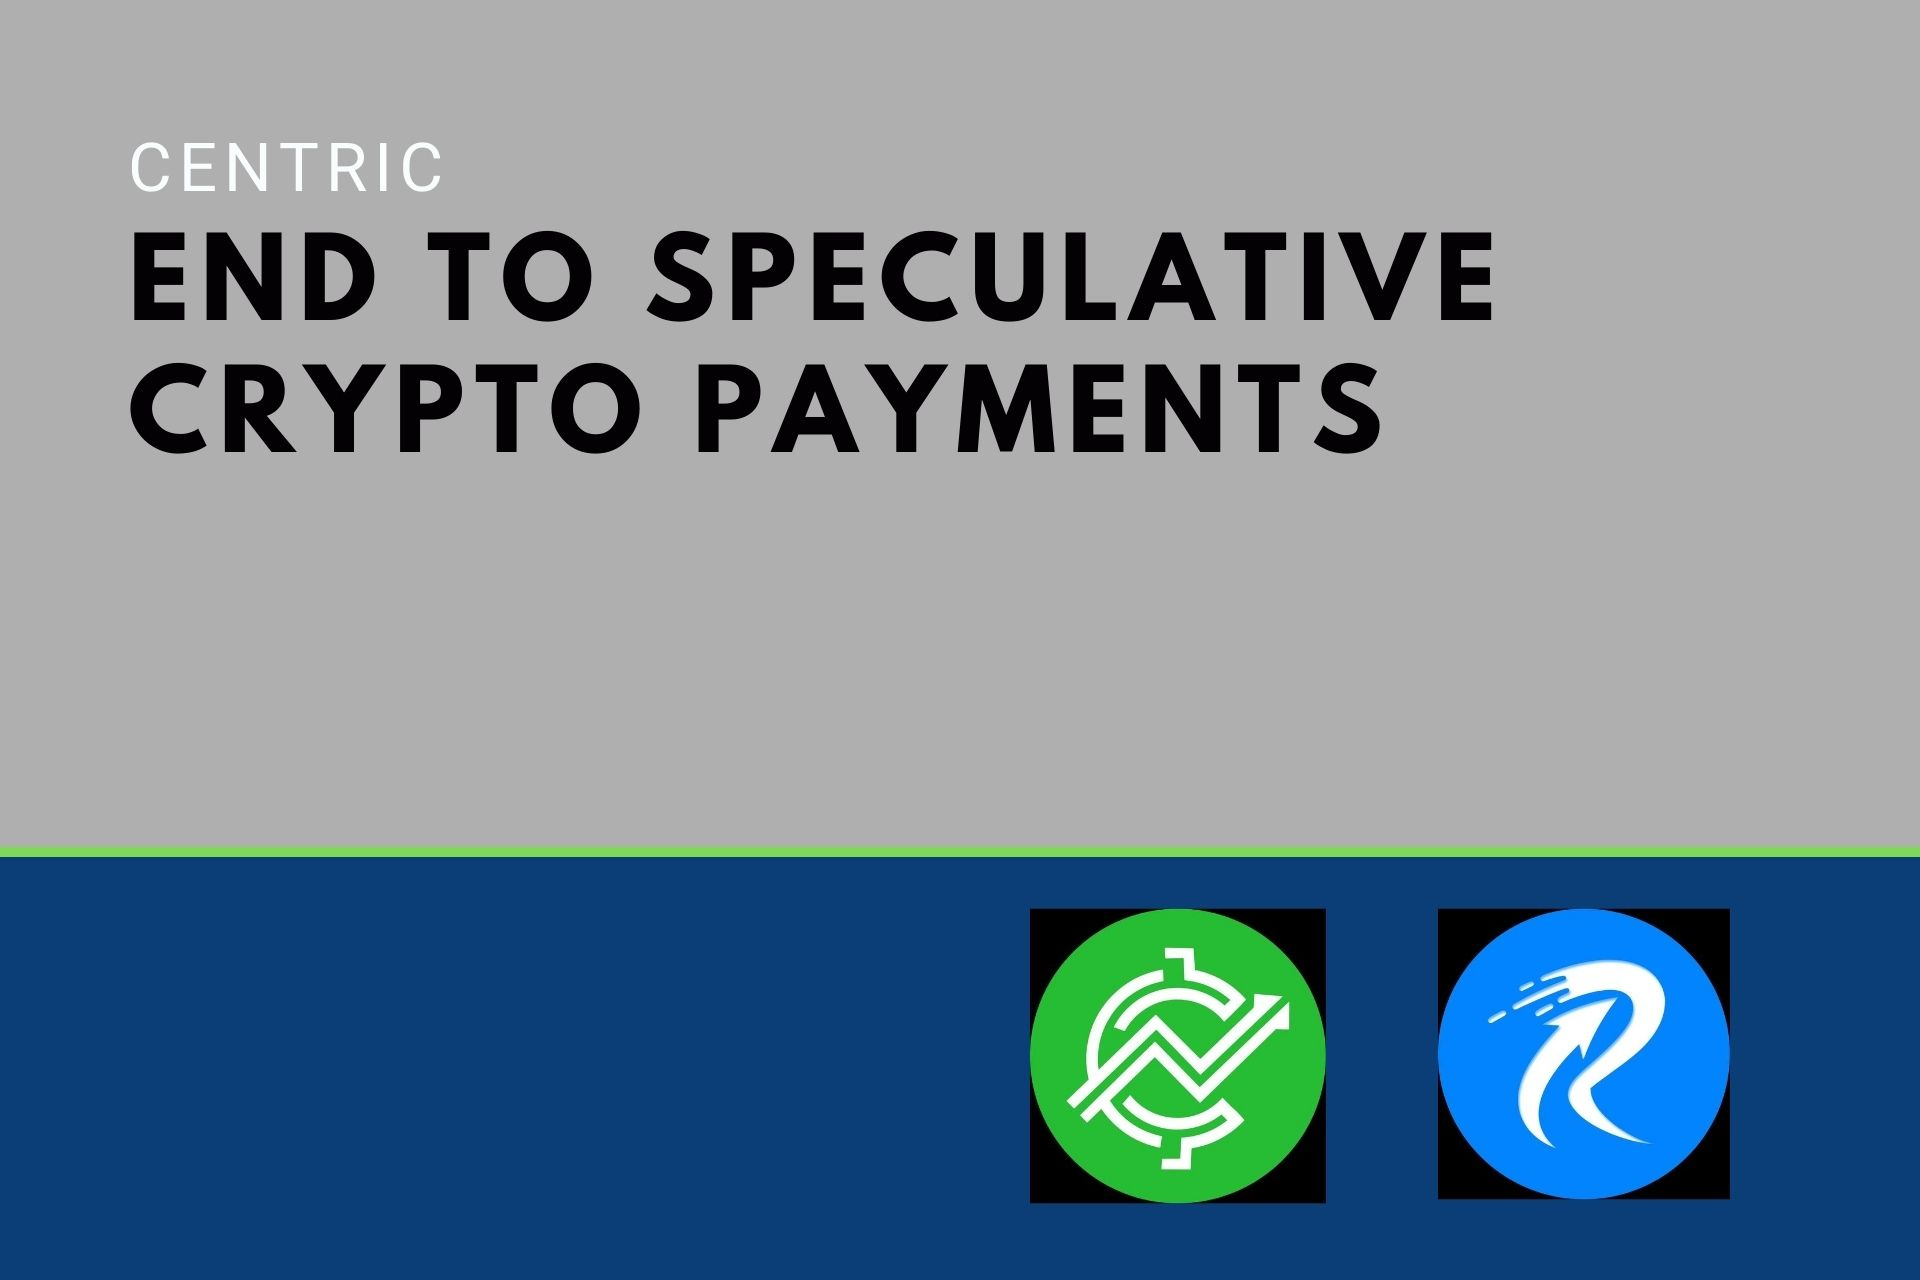 The End To Speculative Crypto Payments